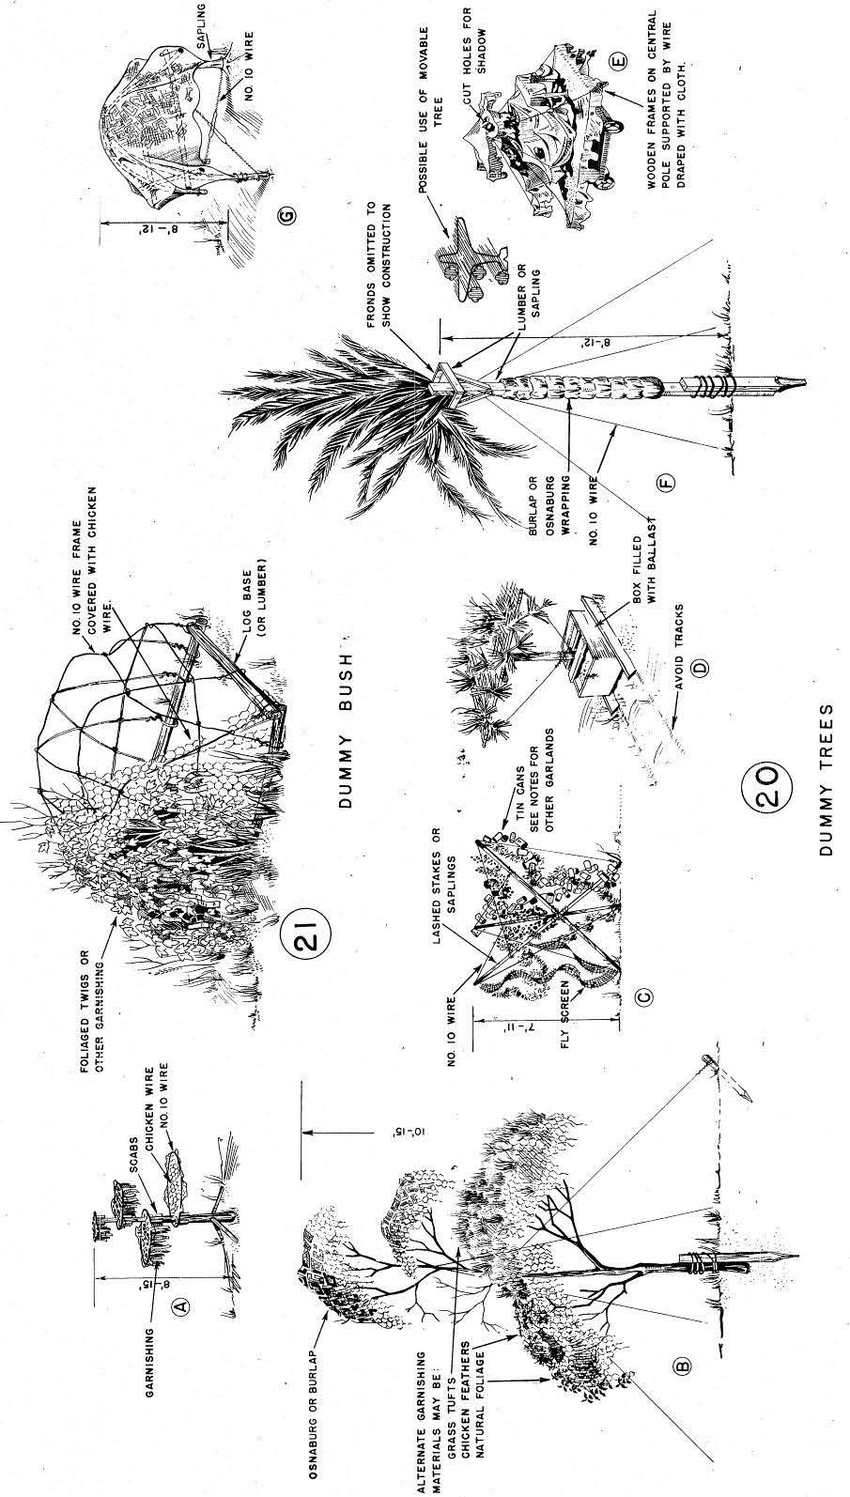 medium resolution of camouflage demonstration area dummy trees and bushes fort bragg nc 1951 standard drawing 28 13 74 sheet 1 of 1 details typical diagram camouflage